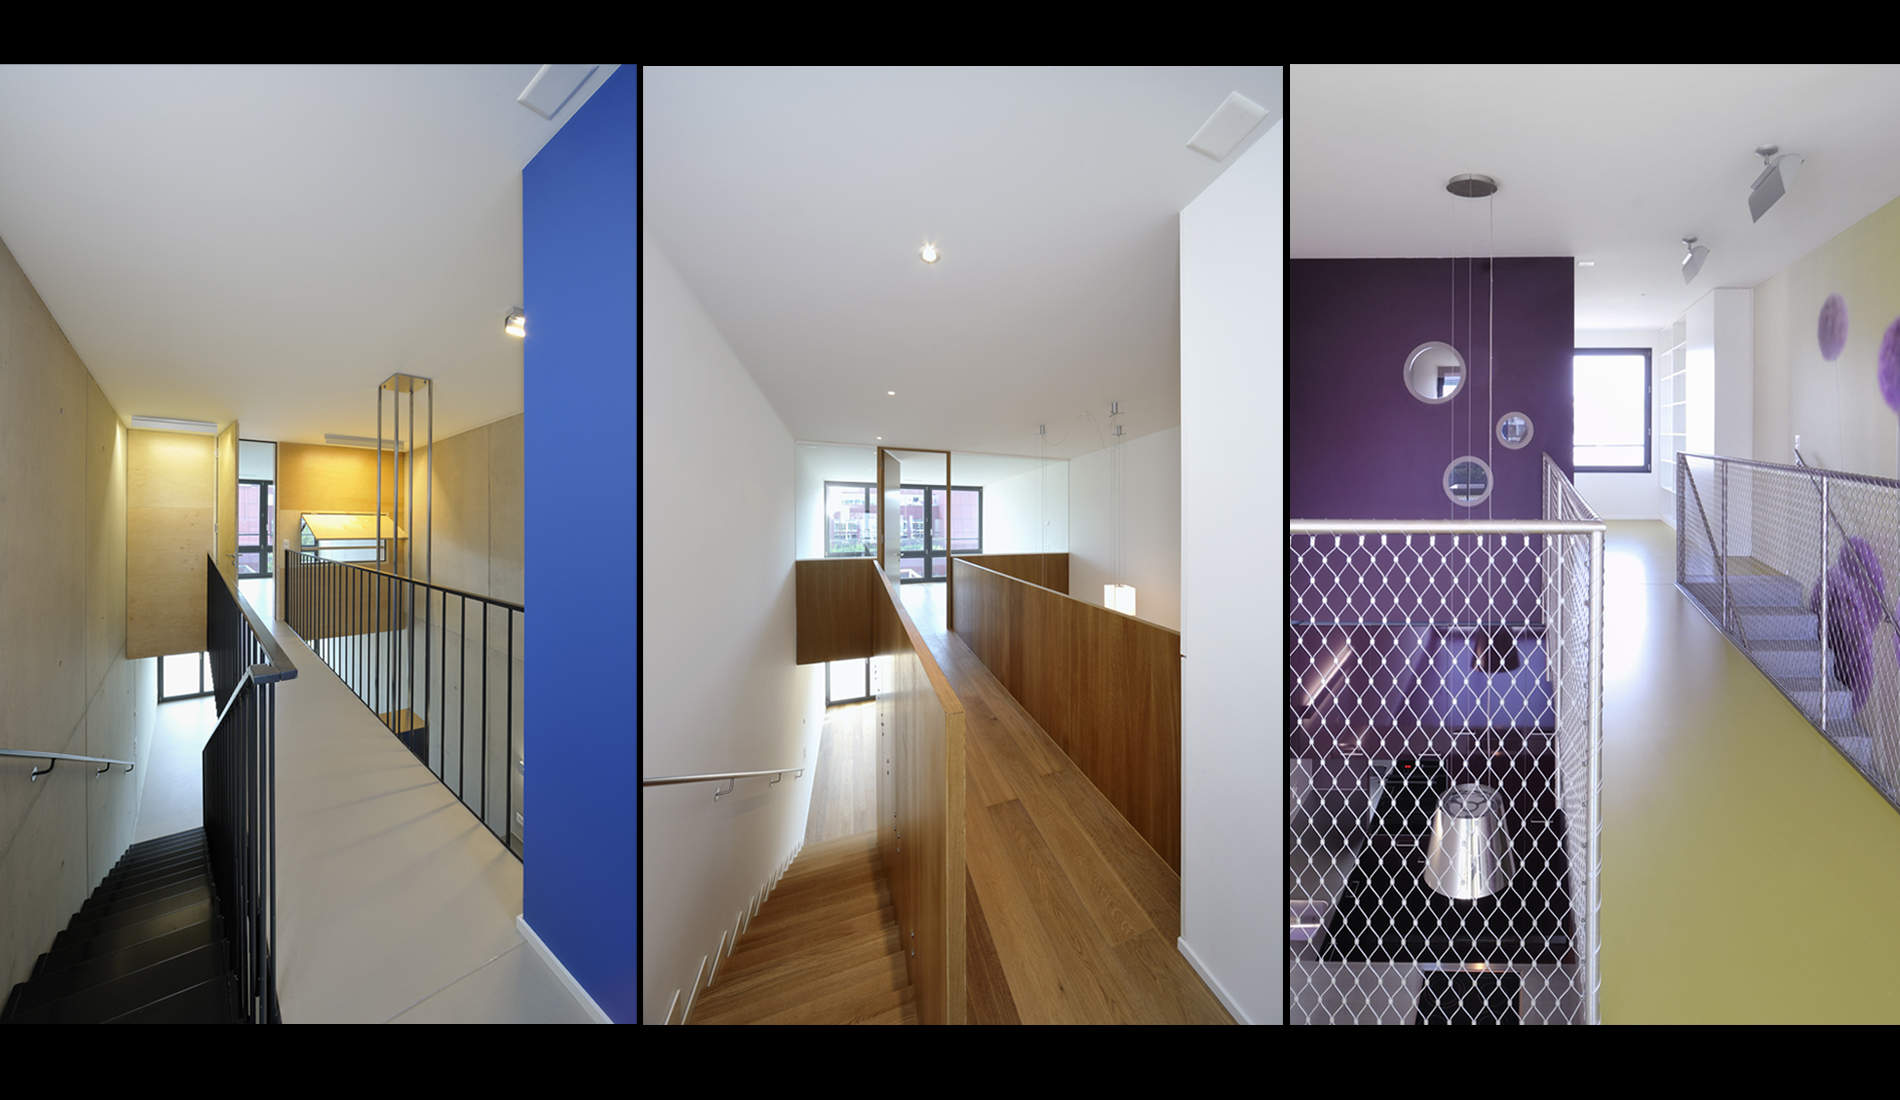 K I S S ,Zurich / Home / Architecture - Technology - Design